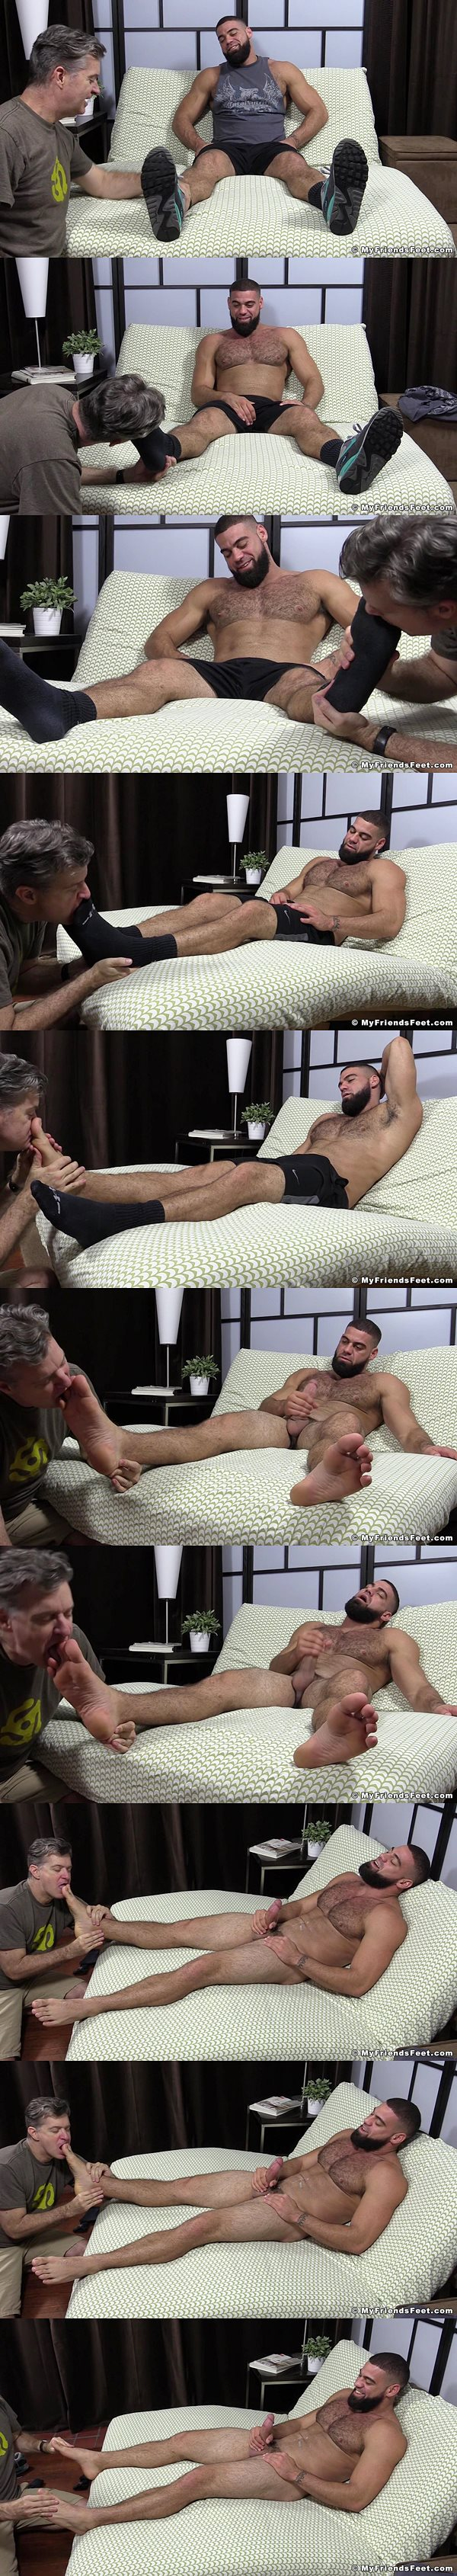 Ricky Larkin shoots his load while getting foot worshiped at Myfriendsfeet